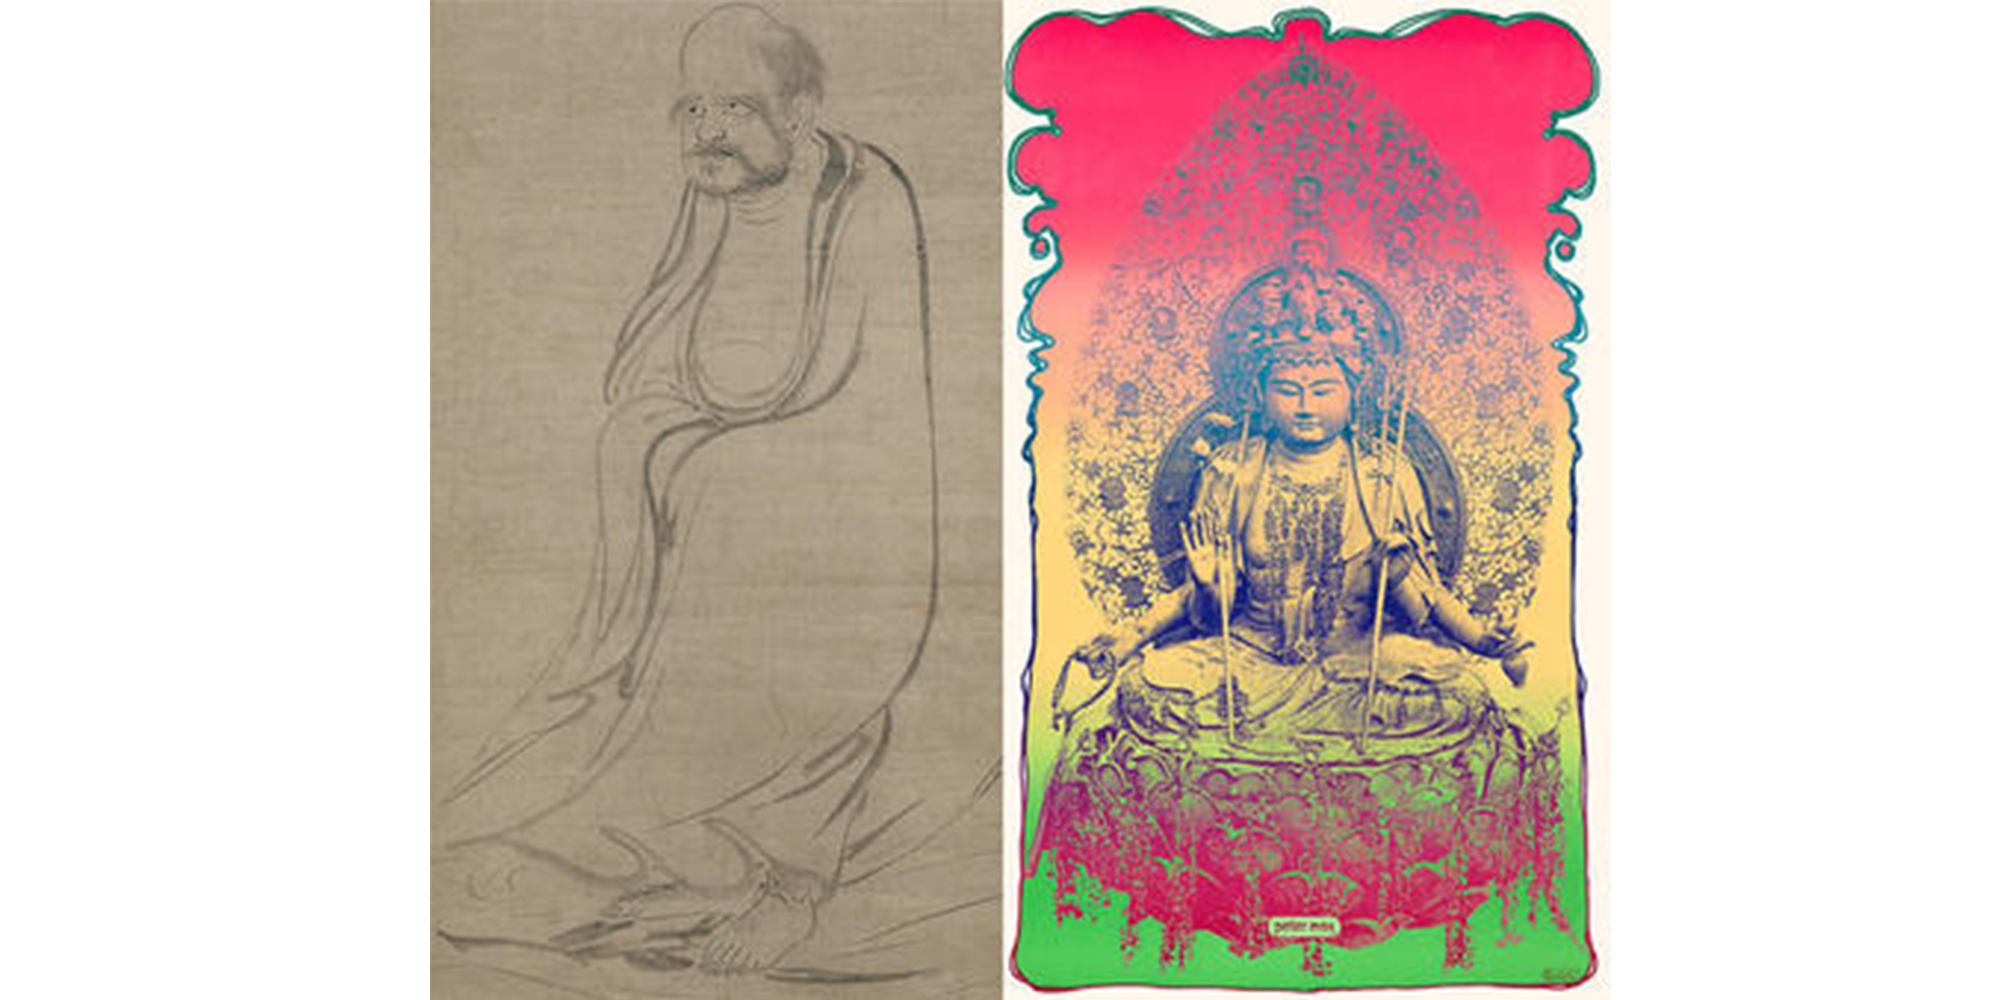 Left: Bodhidharma Crossing the Yangtze River on a Reed  by Sessō Tōyō; Right: Prana by Peter Max